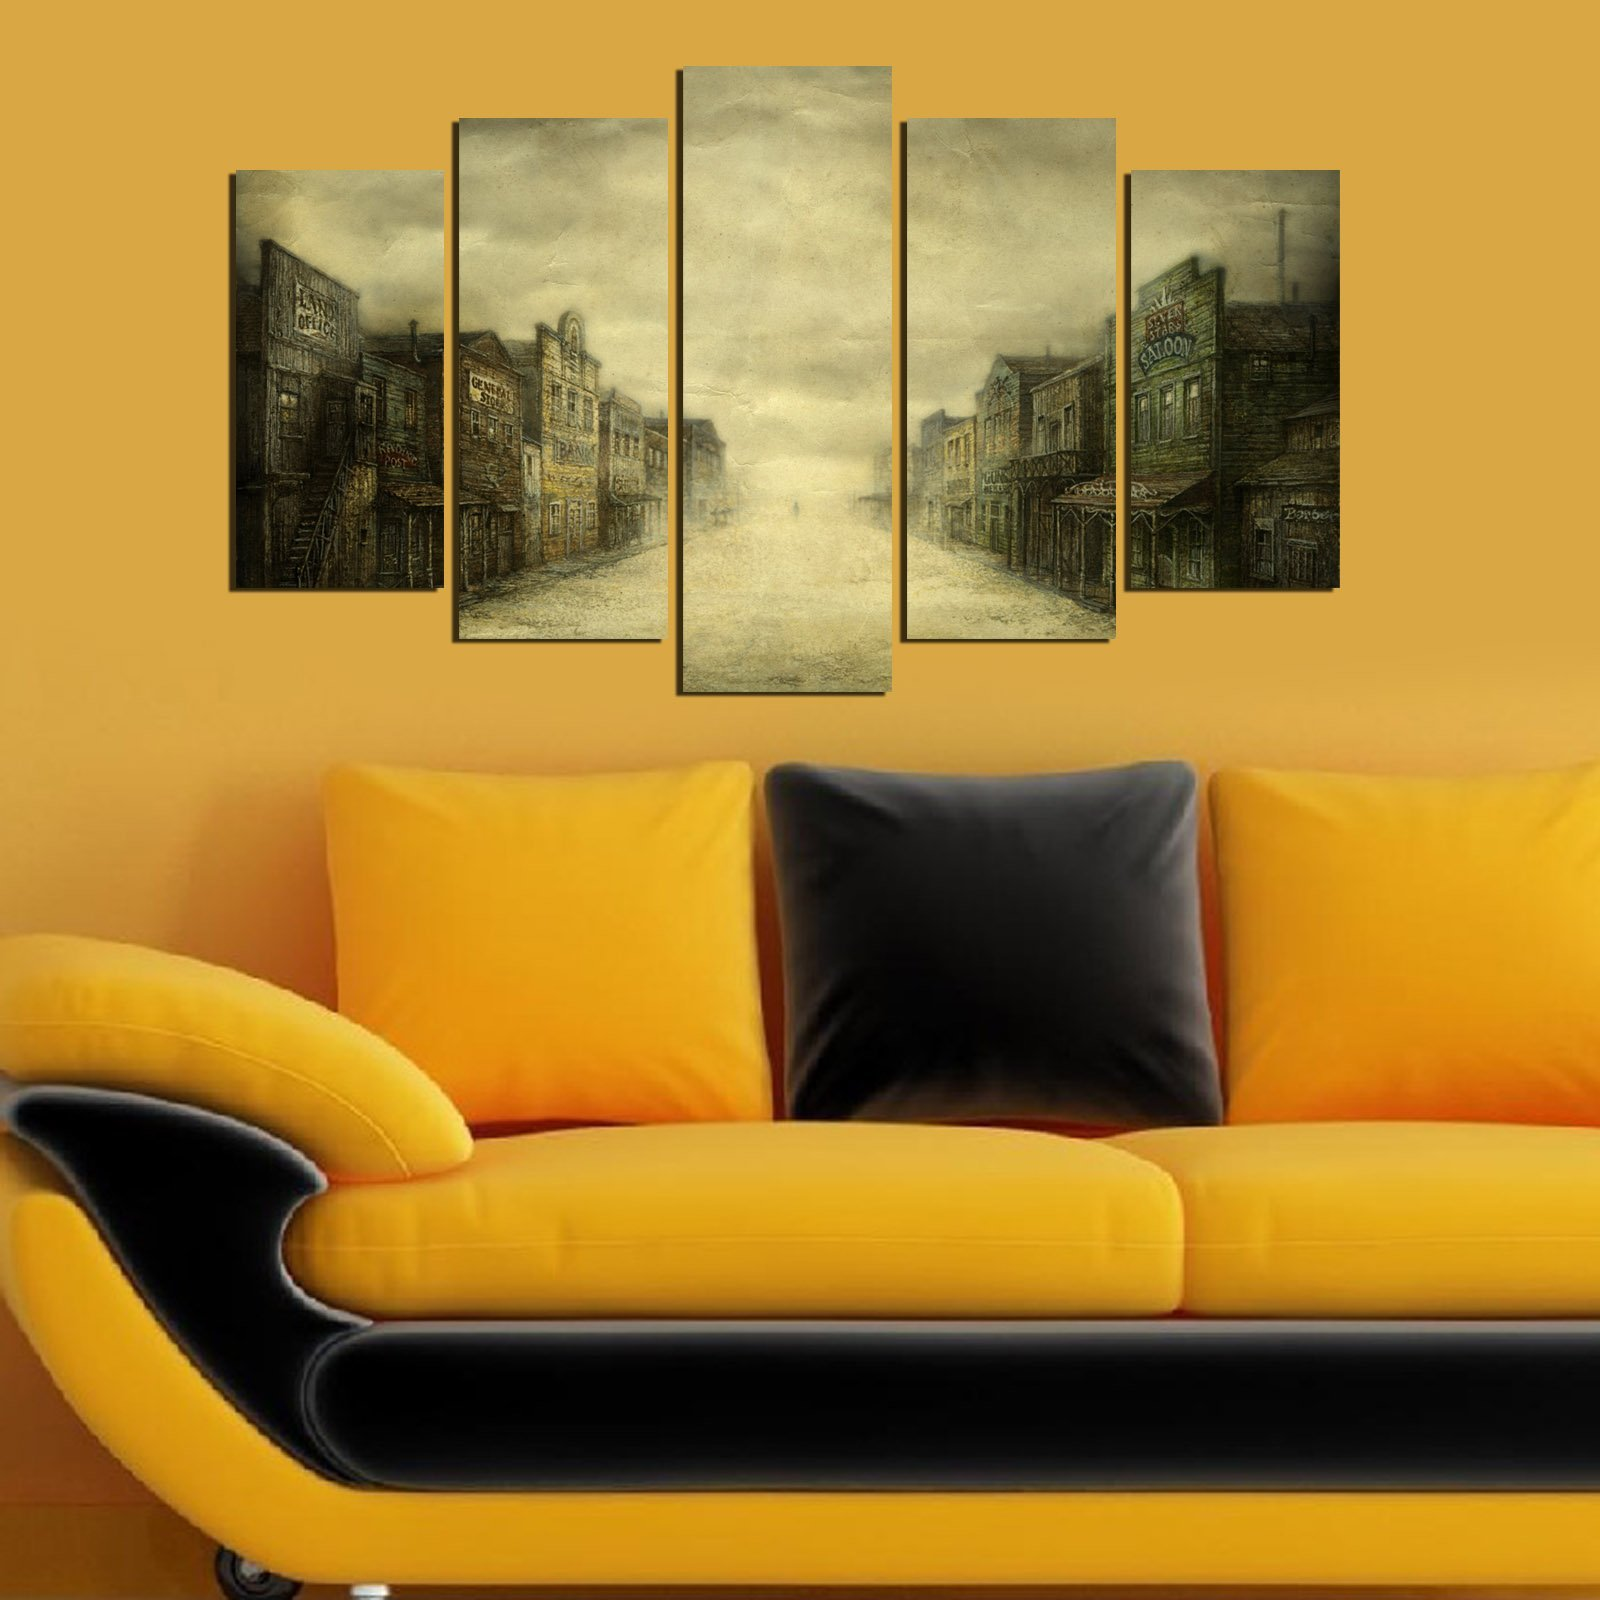 LaModaHome Decorative 100% MDF Wall Art 5 Panels (43'' x 24'' Total) Ready to Hang Painting Old Town America Cowboy Wild West Deserted